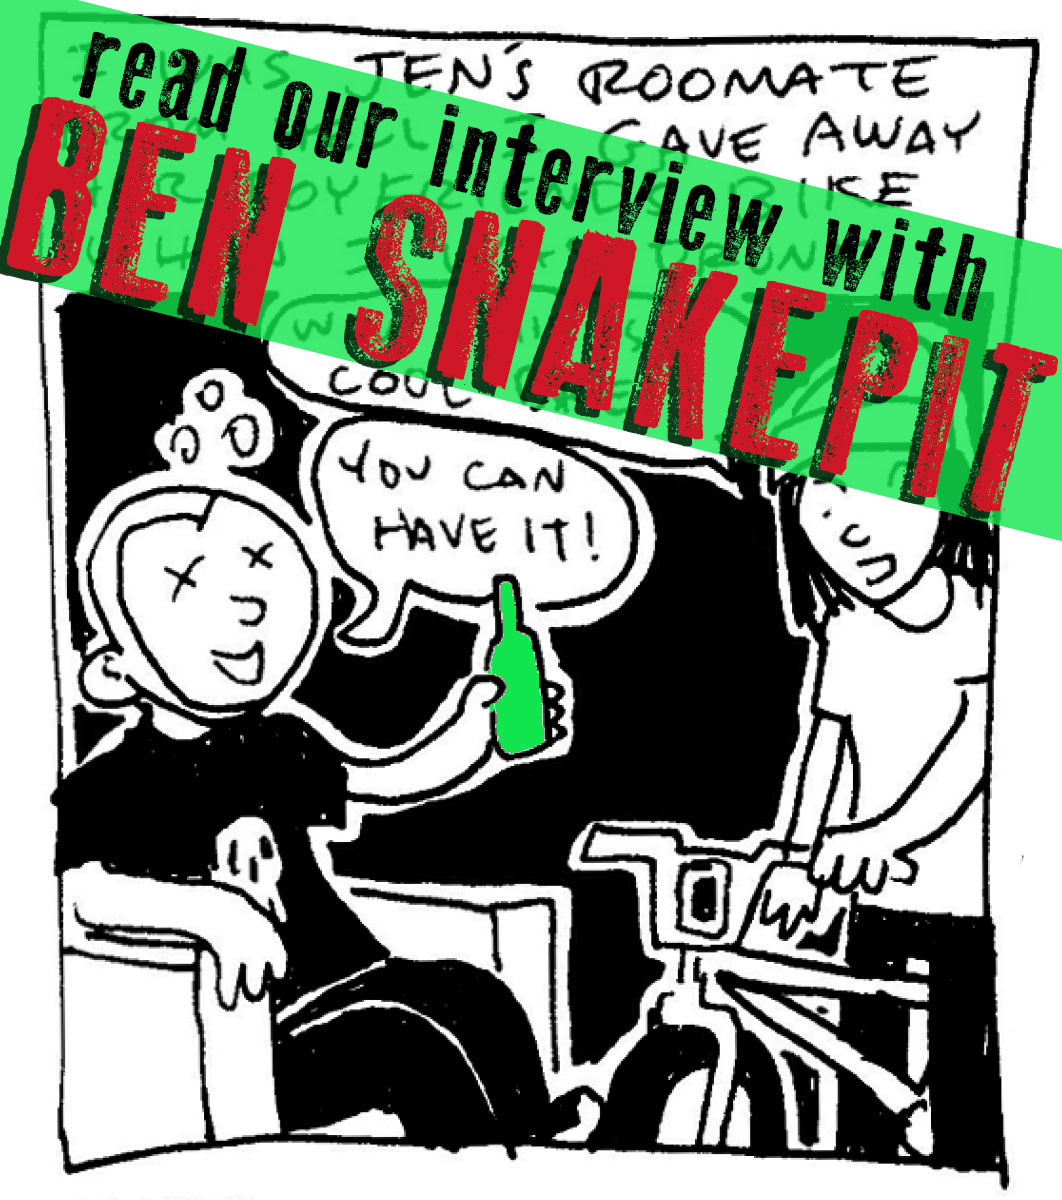 """SILVER SPROCKET Interview with Ben Snakepit    Ben Snakepit has been making daily diary comics for fifteen years, inventing the genre as a punk-comix pioneer without learning how to actually draw. Read on to learn more about the artist behind the madness.    Interview by  Natalye  for  Silver Sprocket      What have you been doing  since we last talked to you ?   I'm still drawing diary comics every day (my newest book will be out in 2016!) and working at my dumbass """"normal"""" job.    If your contribution to  AYW #4  is any indication, you sound like a terrible person to live with. Has that changed? Aside from being the """"roommate from hell,"""" what are some selling points for having you as a roommate? What's your ideal living situation?   My ideal living situation is the one I have now: me and my wife in our dumb little house in the suburbs. I hope I never have to live with another roommate again, I always kinda hated it.   You said in your last interview with us that you make it a point to only do one-page comics. Why is that? What kinds of artistic things would you consider doing that would take you out of your """"comfort zone?"""" What sorts of things are you content never trying?   Much in the way that I enjoy the challenge of fitting my days into three panels each, I like the idea of keeping my other comics constrained within a one-page format. There have been times when I've done two or three pages, but that usually has to be some kind of epic story to justify it. Something I've never been interested in trying is writing/drawing a fictional story. I keeps it real.   Your drawing style has stayed remarkably consistent over the years. Is this on purpose, or do you secretly do epic detailed weird shit on the side that doesn't make it into the journal comics?   Nah, I'm just a crappy artist and always will be. One big reason is that I never use pencils. I always go straight ink on paper, so if I make a mistake I just have to deal with it. I think this contributes to my """"ca"""